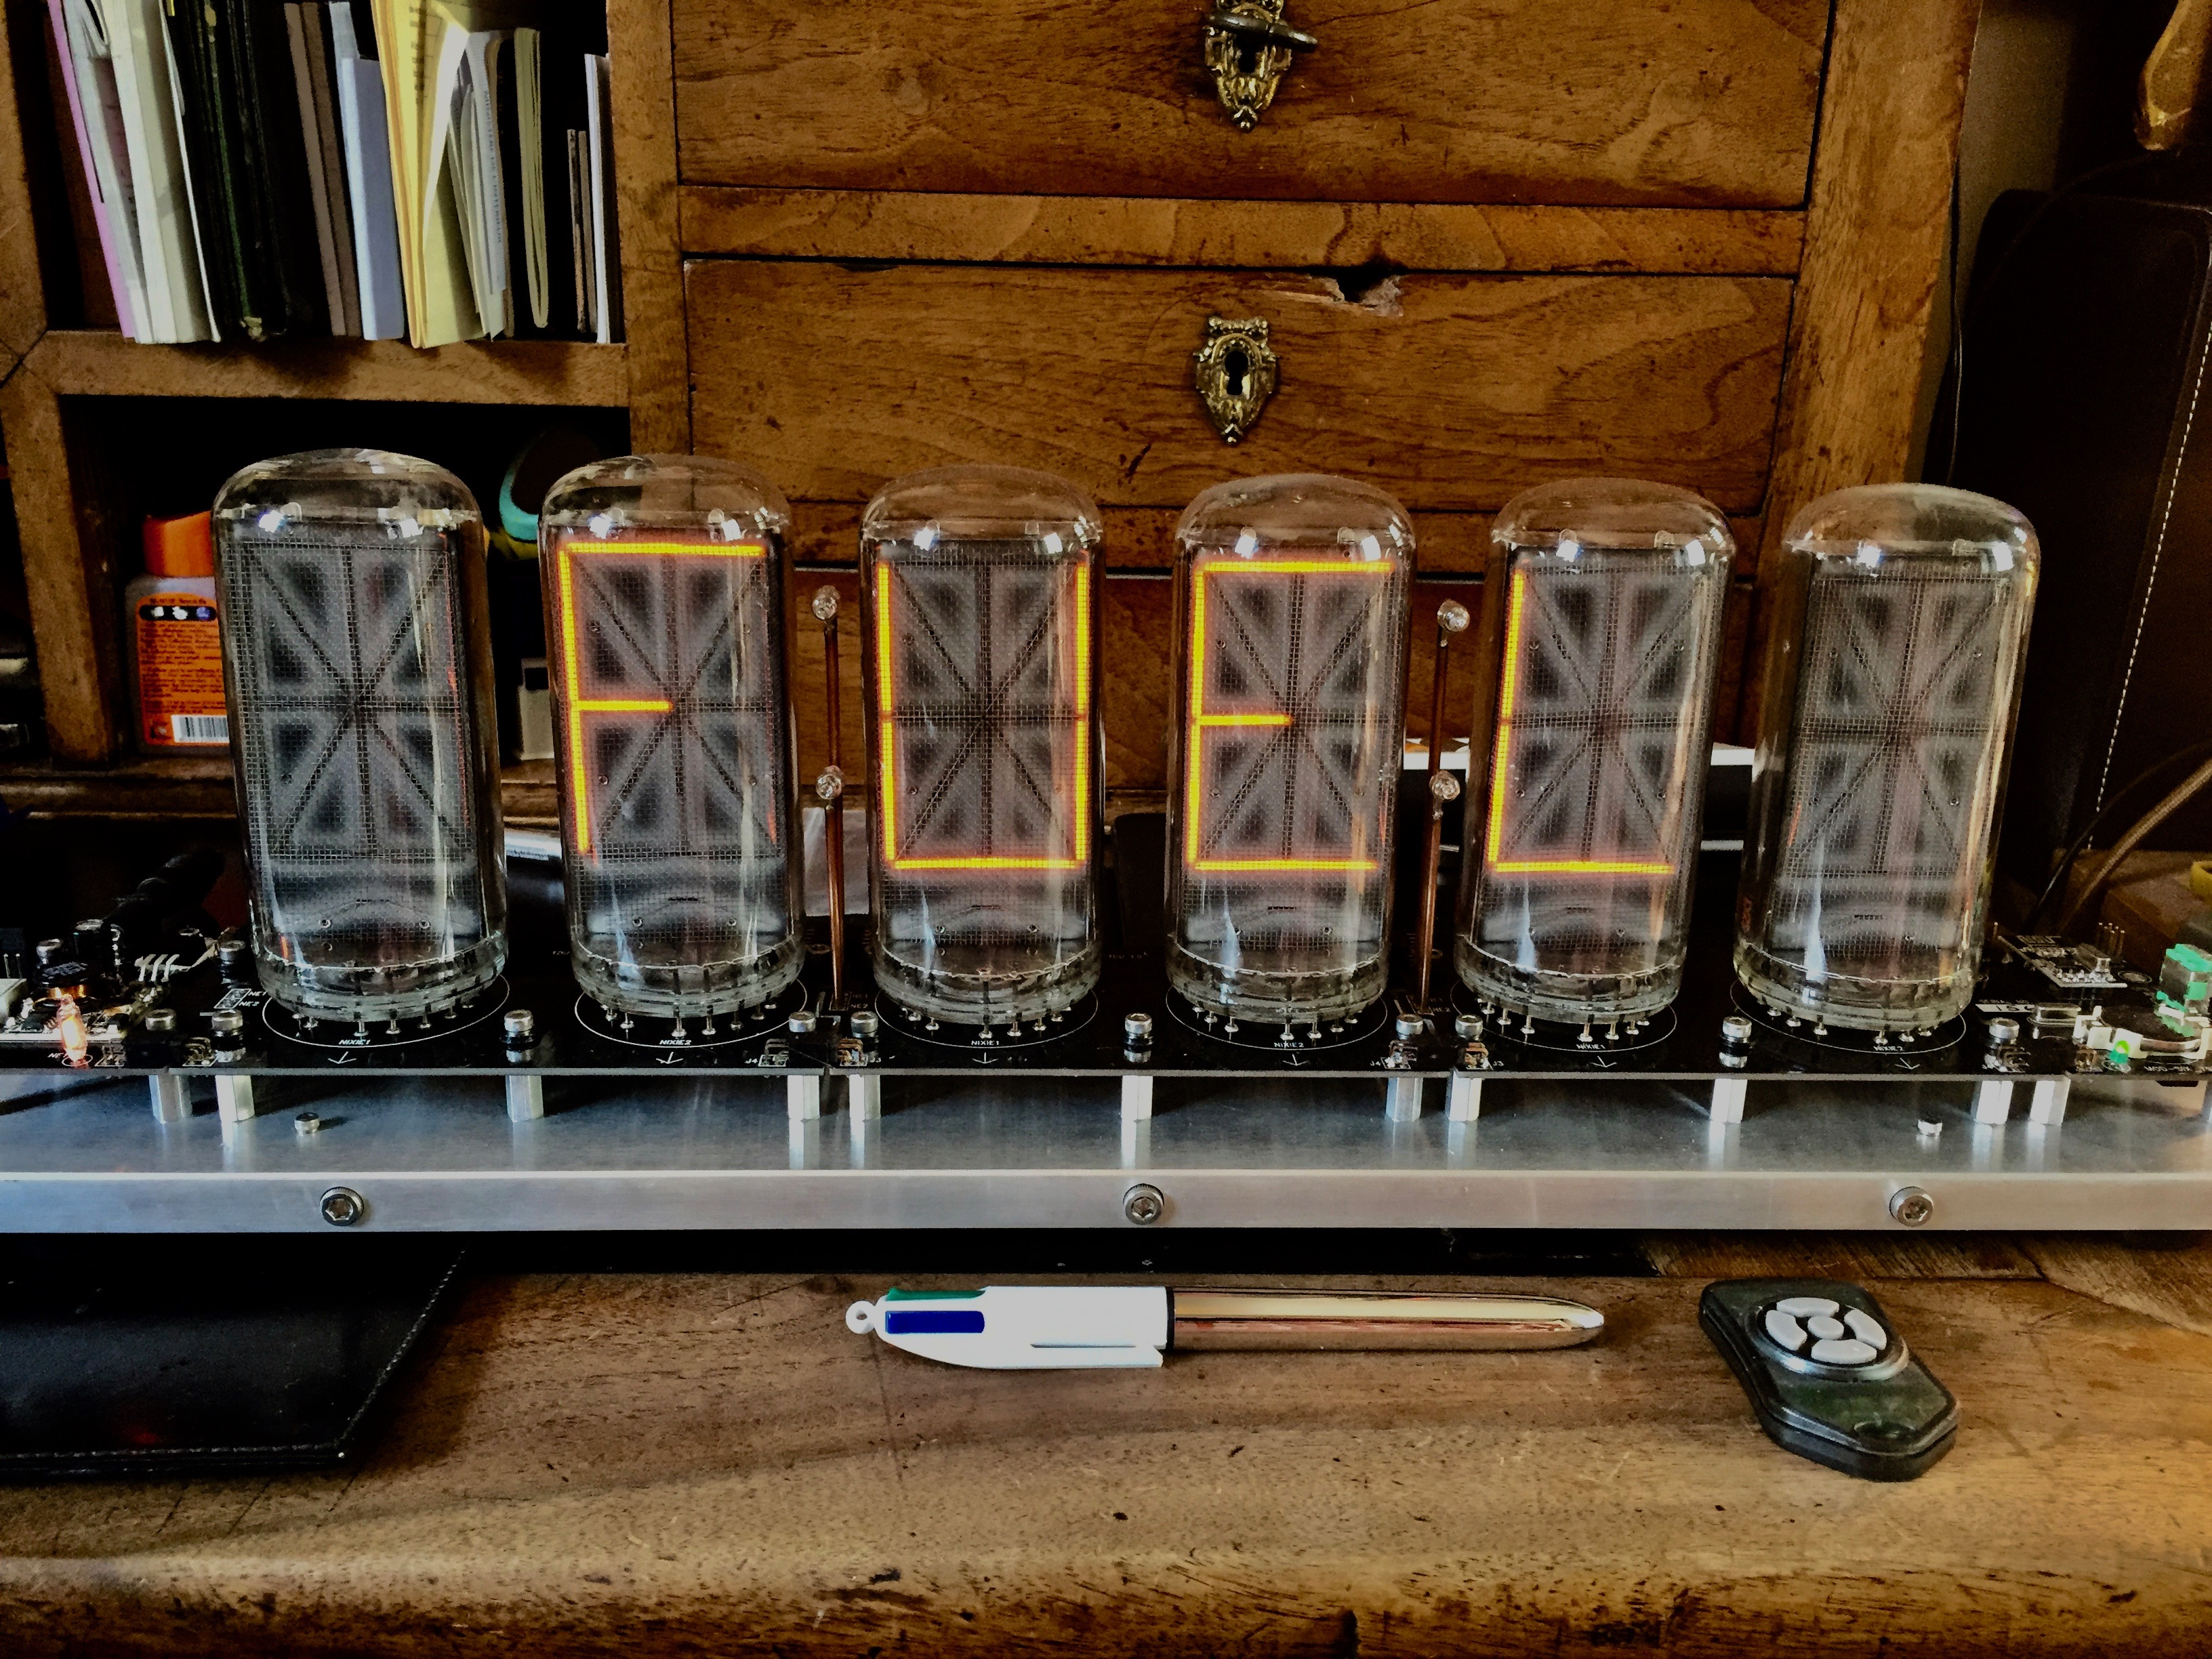 Collector Giant Nixie Clock - Mod_Six Clock: a masterpiece with 6 B-7971  nixie tubes - Museum quality huge clock